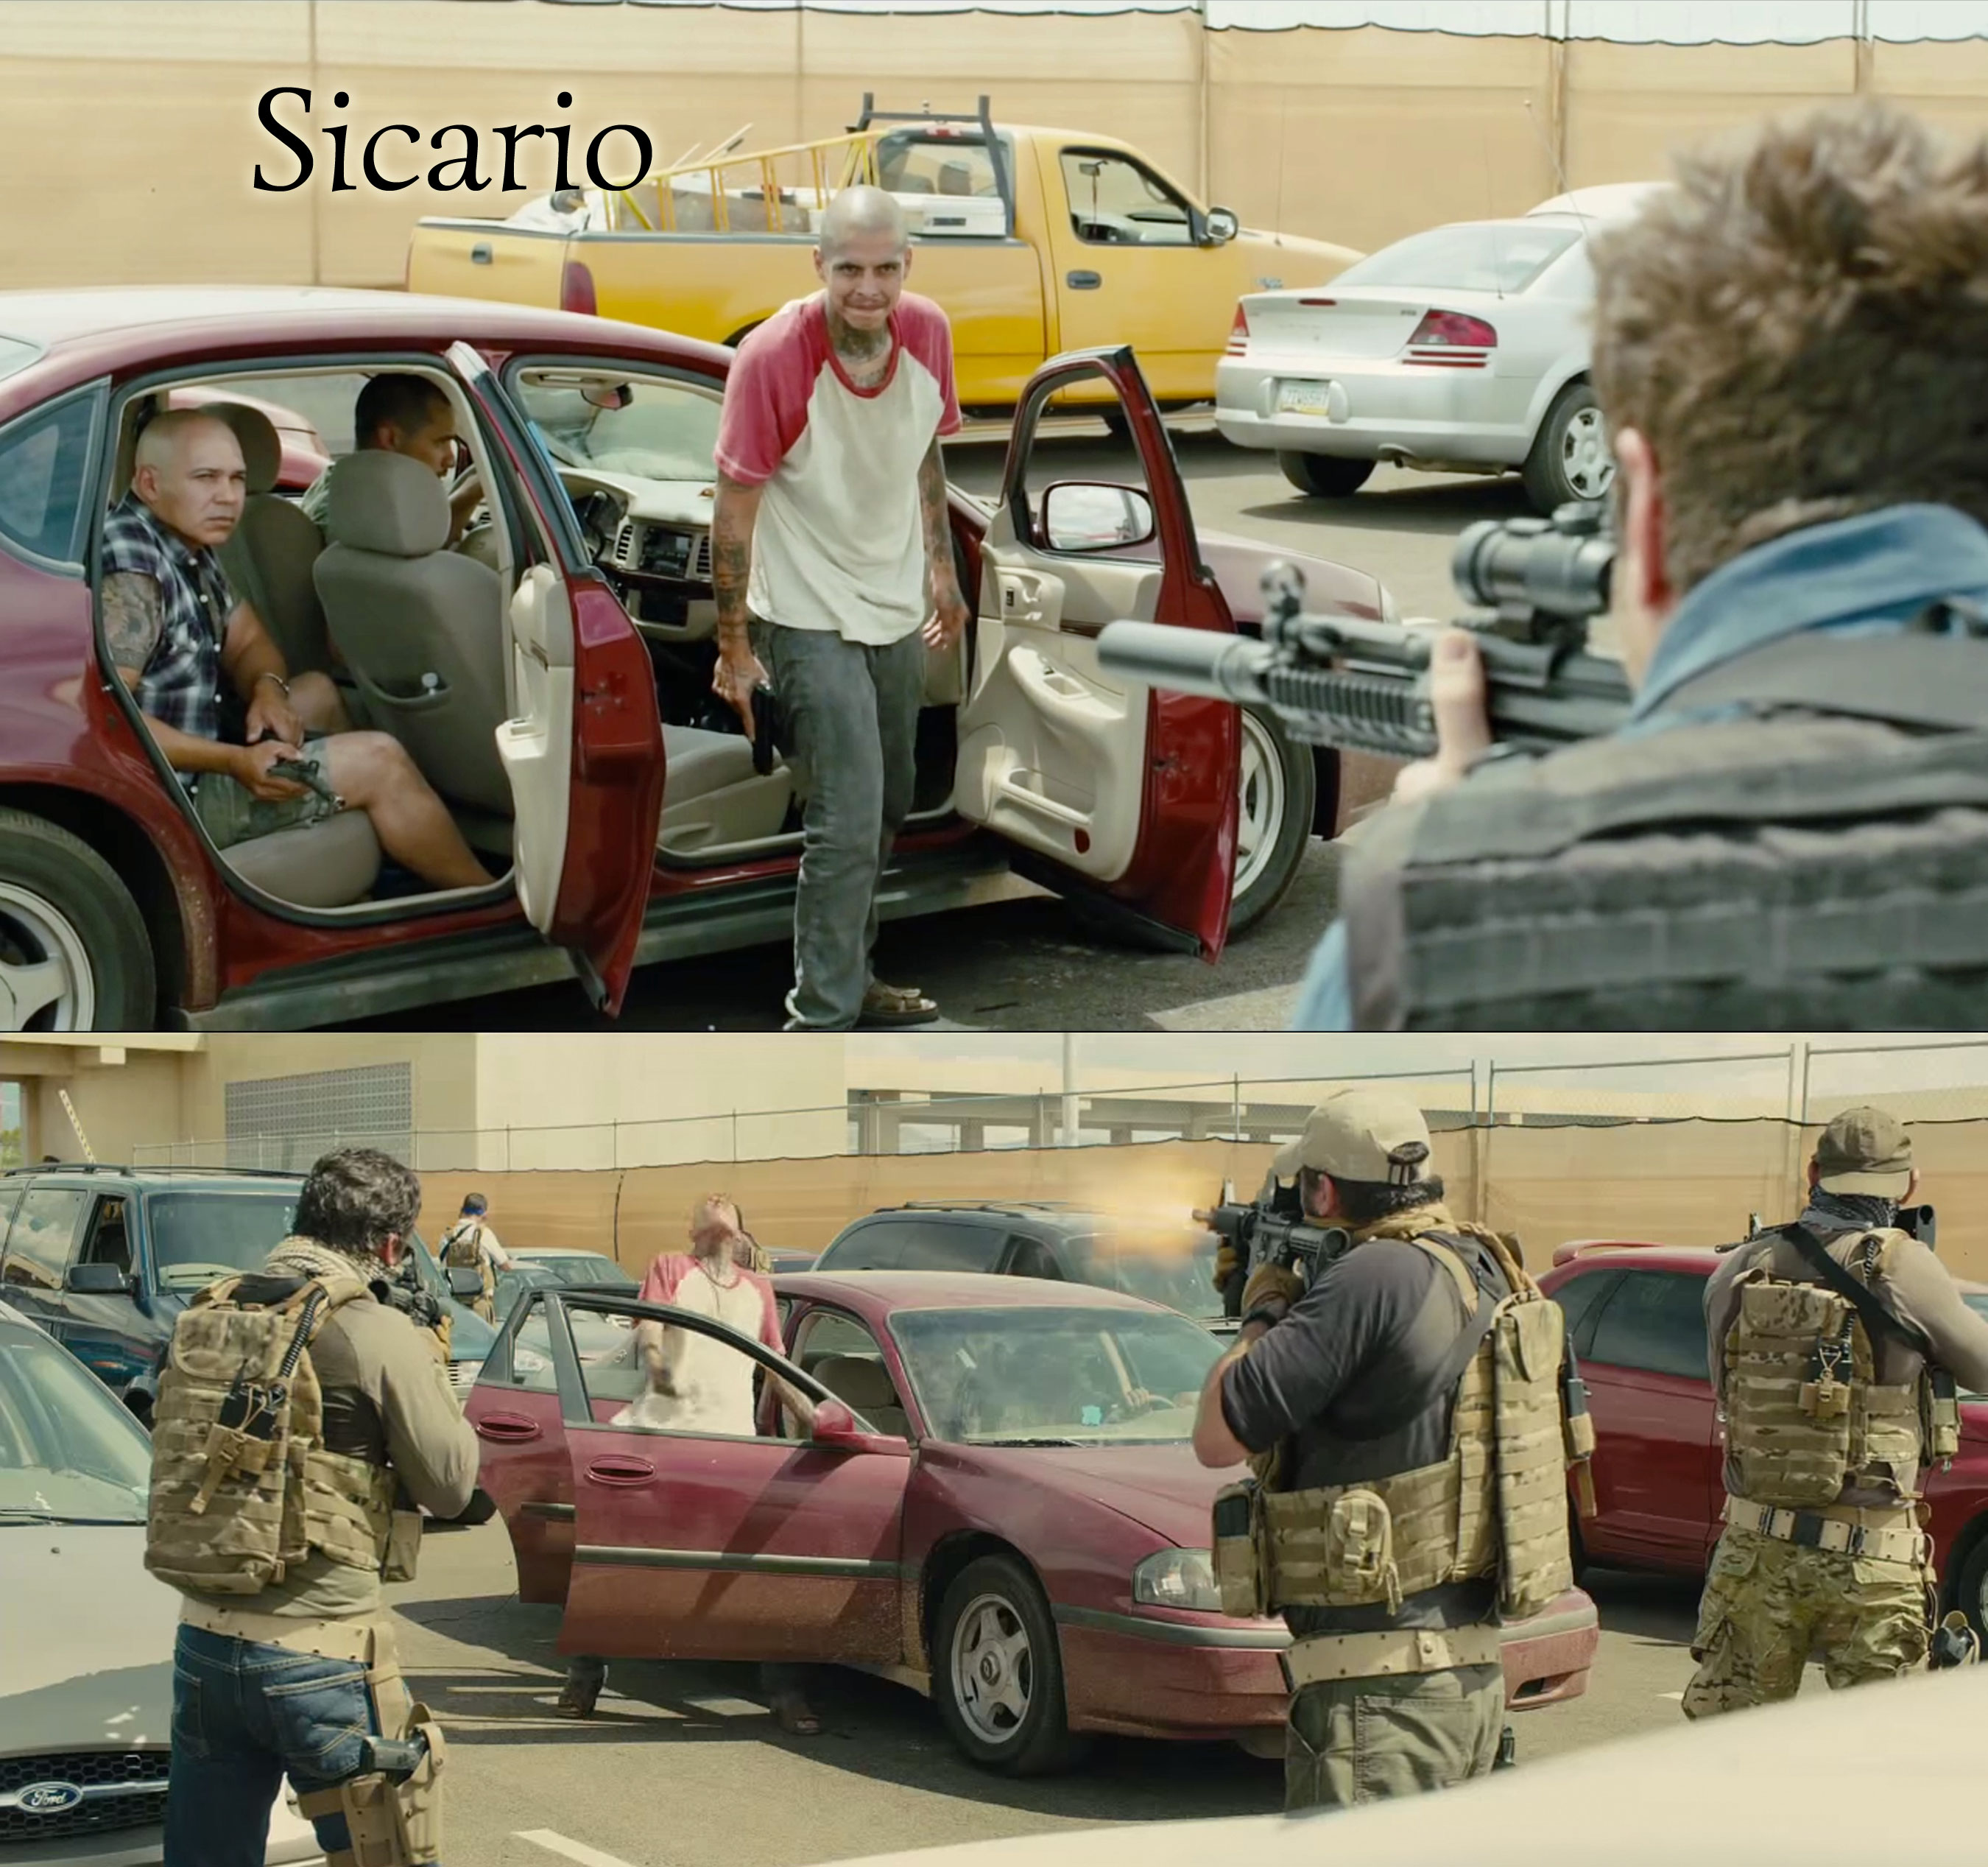 Sicario 2015 film Border Crossing Shootout | Book Addicts